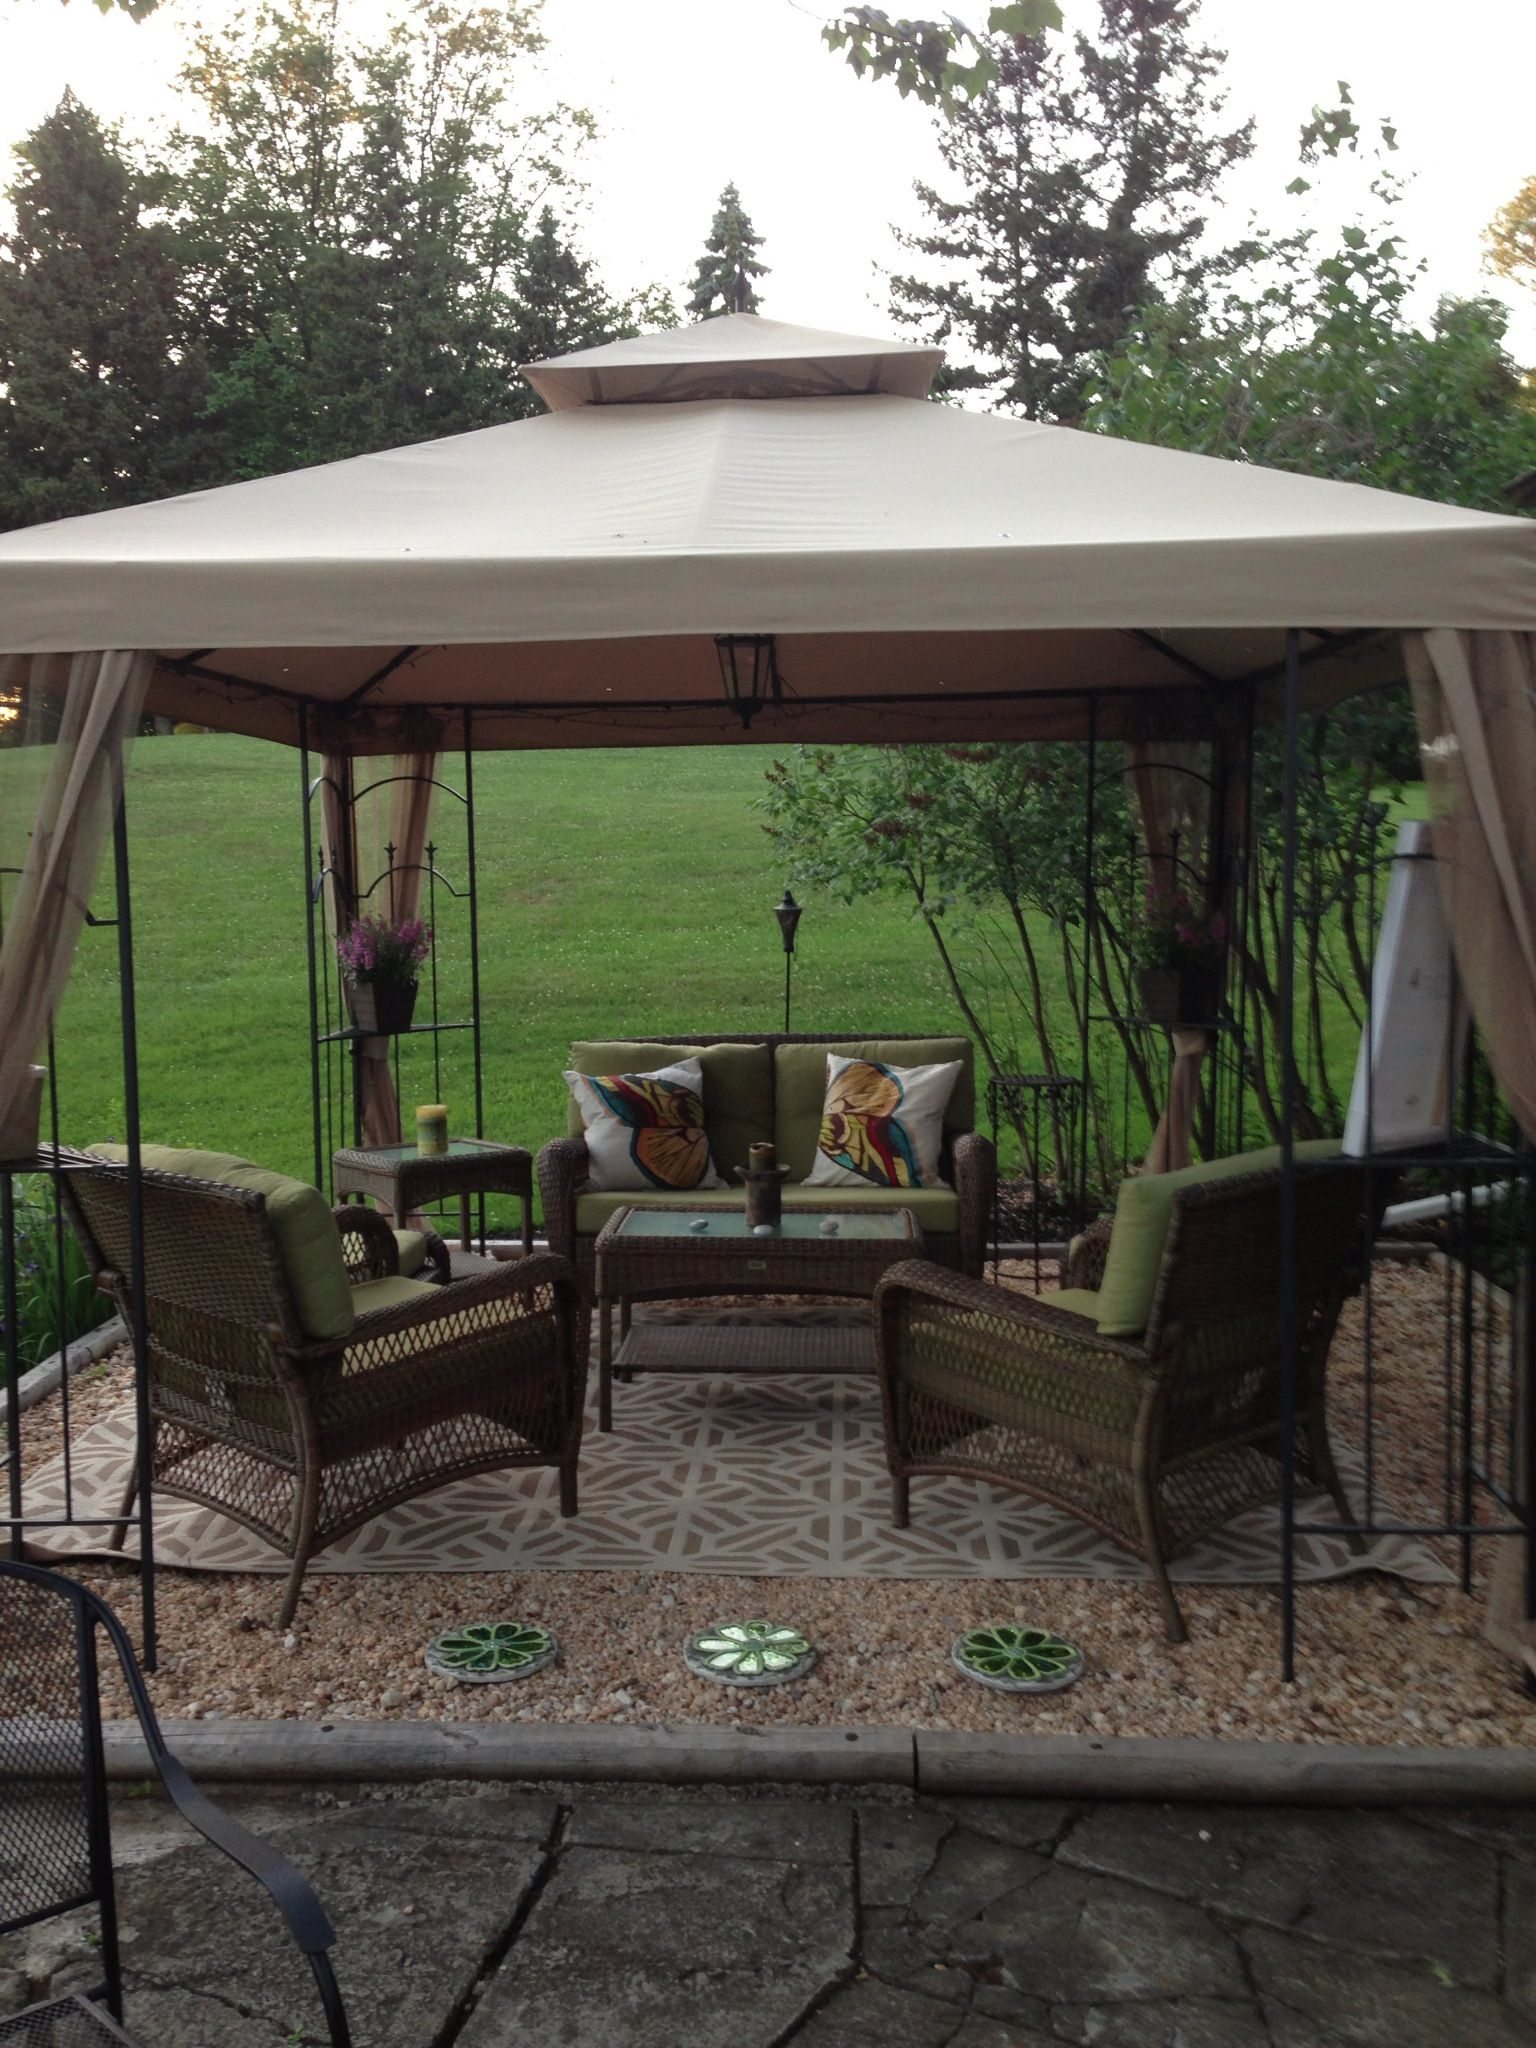 Idea For Gazebo On Sale For Just Over 1000 At Lowes In July My regarding 12 Awesome Ideas How to Improve Lowes Backyard Ideas